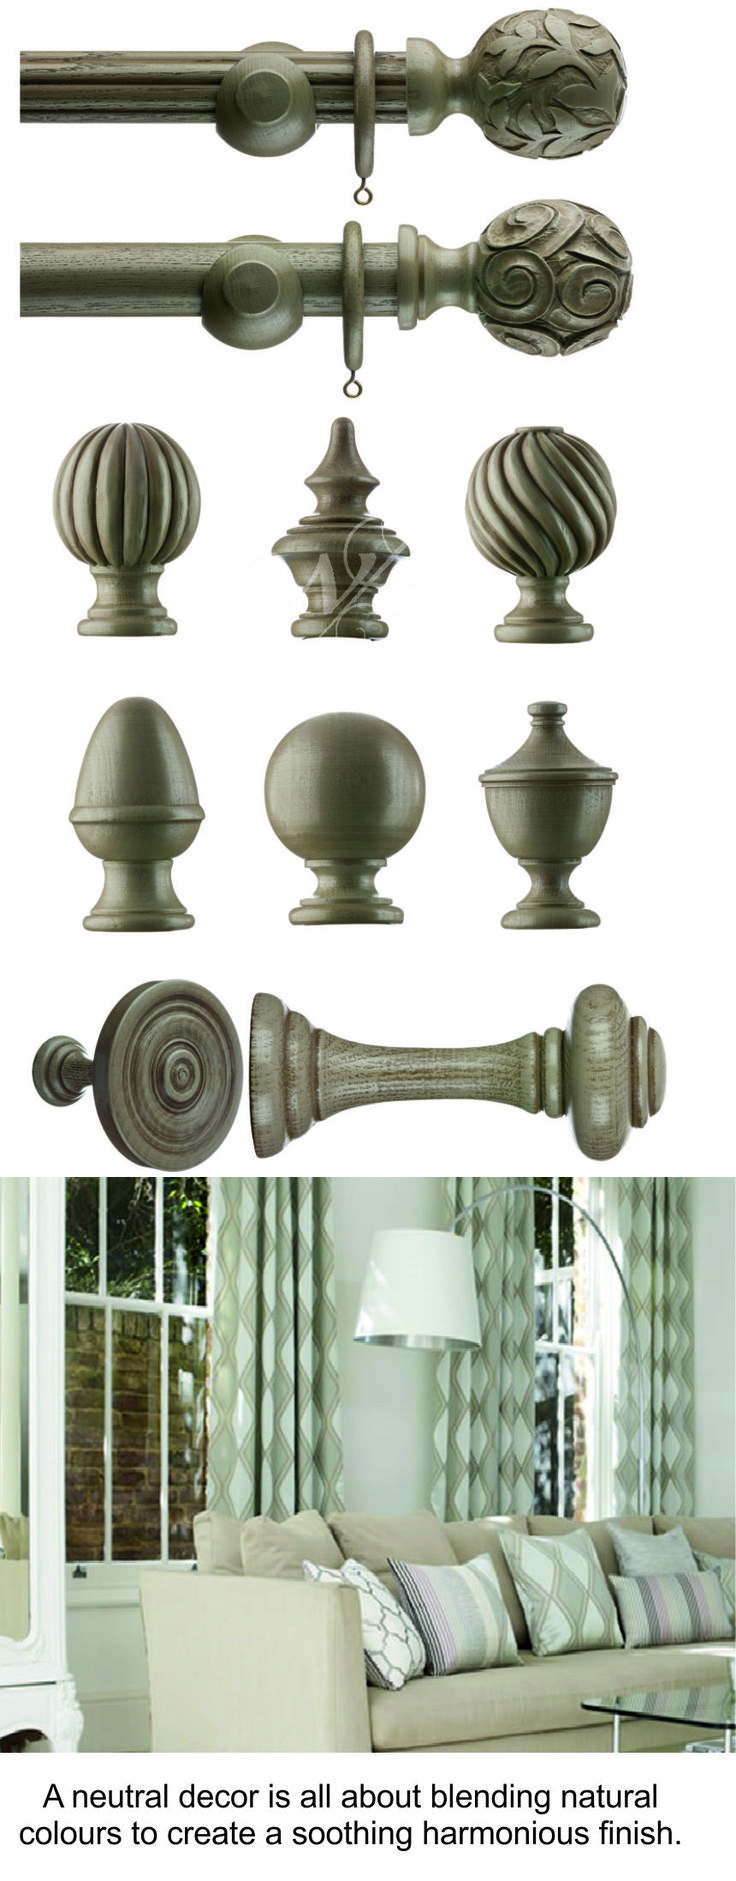 NEUTRAL WOODEN CURTAIN POLES. These fabulous wooden poles are available in various neutral colours, ideal for a natural decor. From £100 See more http://www.broughton-interiors.co.uk/collections/modern-wood-poles?page=3 #curtainpoles #interiordesign